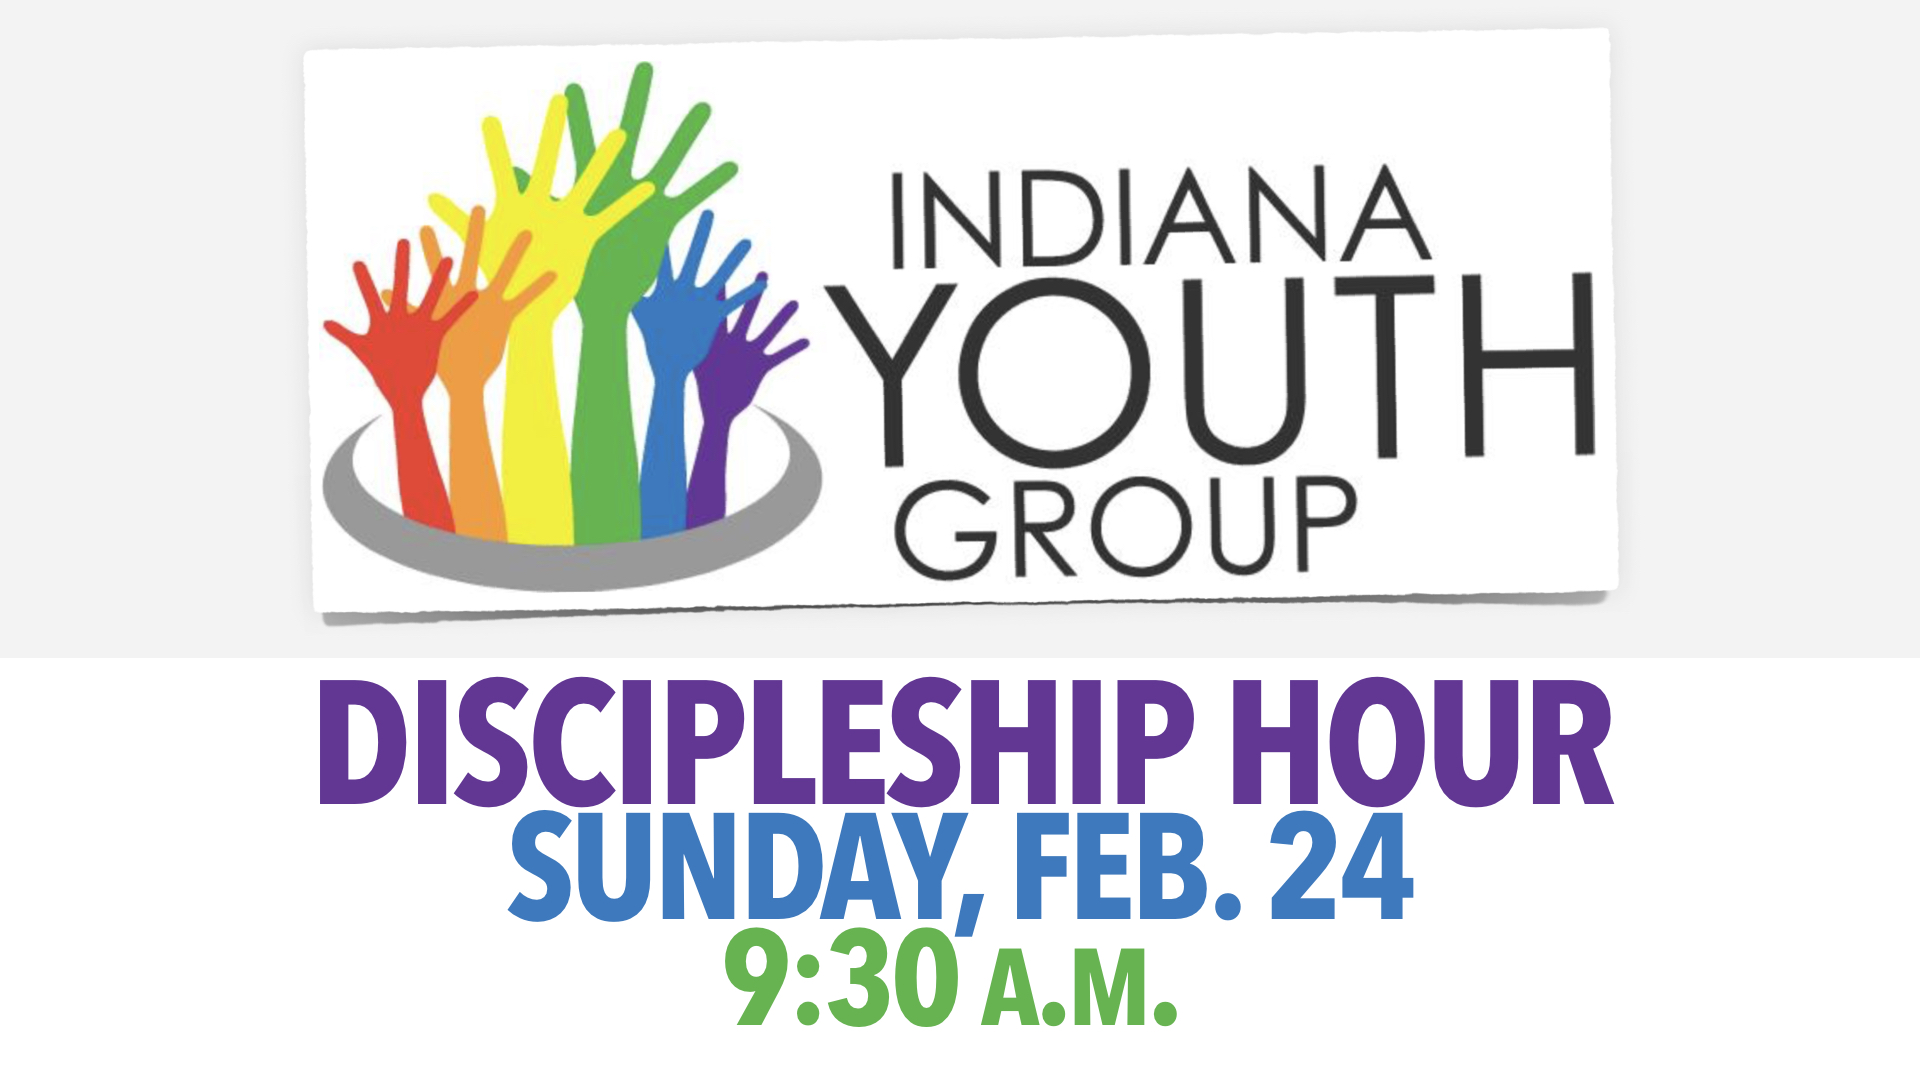 Discipleship Hour with Indiana Youth Group